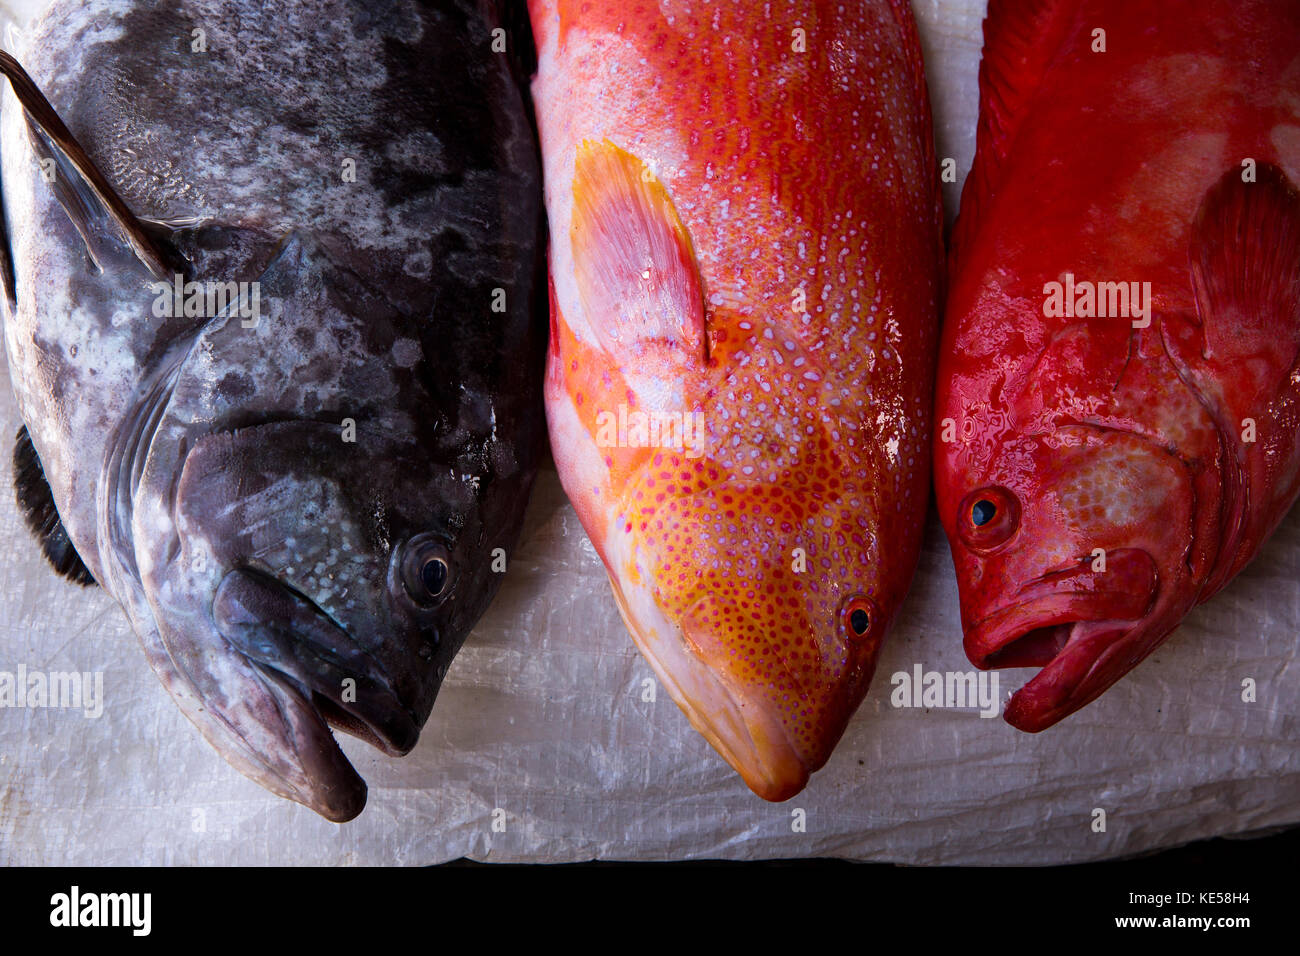 The Seychelles, Mahe, Victoria, Sir Selwyn Selwyn-Clarke Market, fish stall, reef fish, groupers for sale - Stock Image